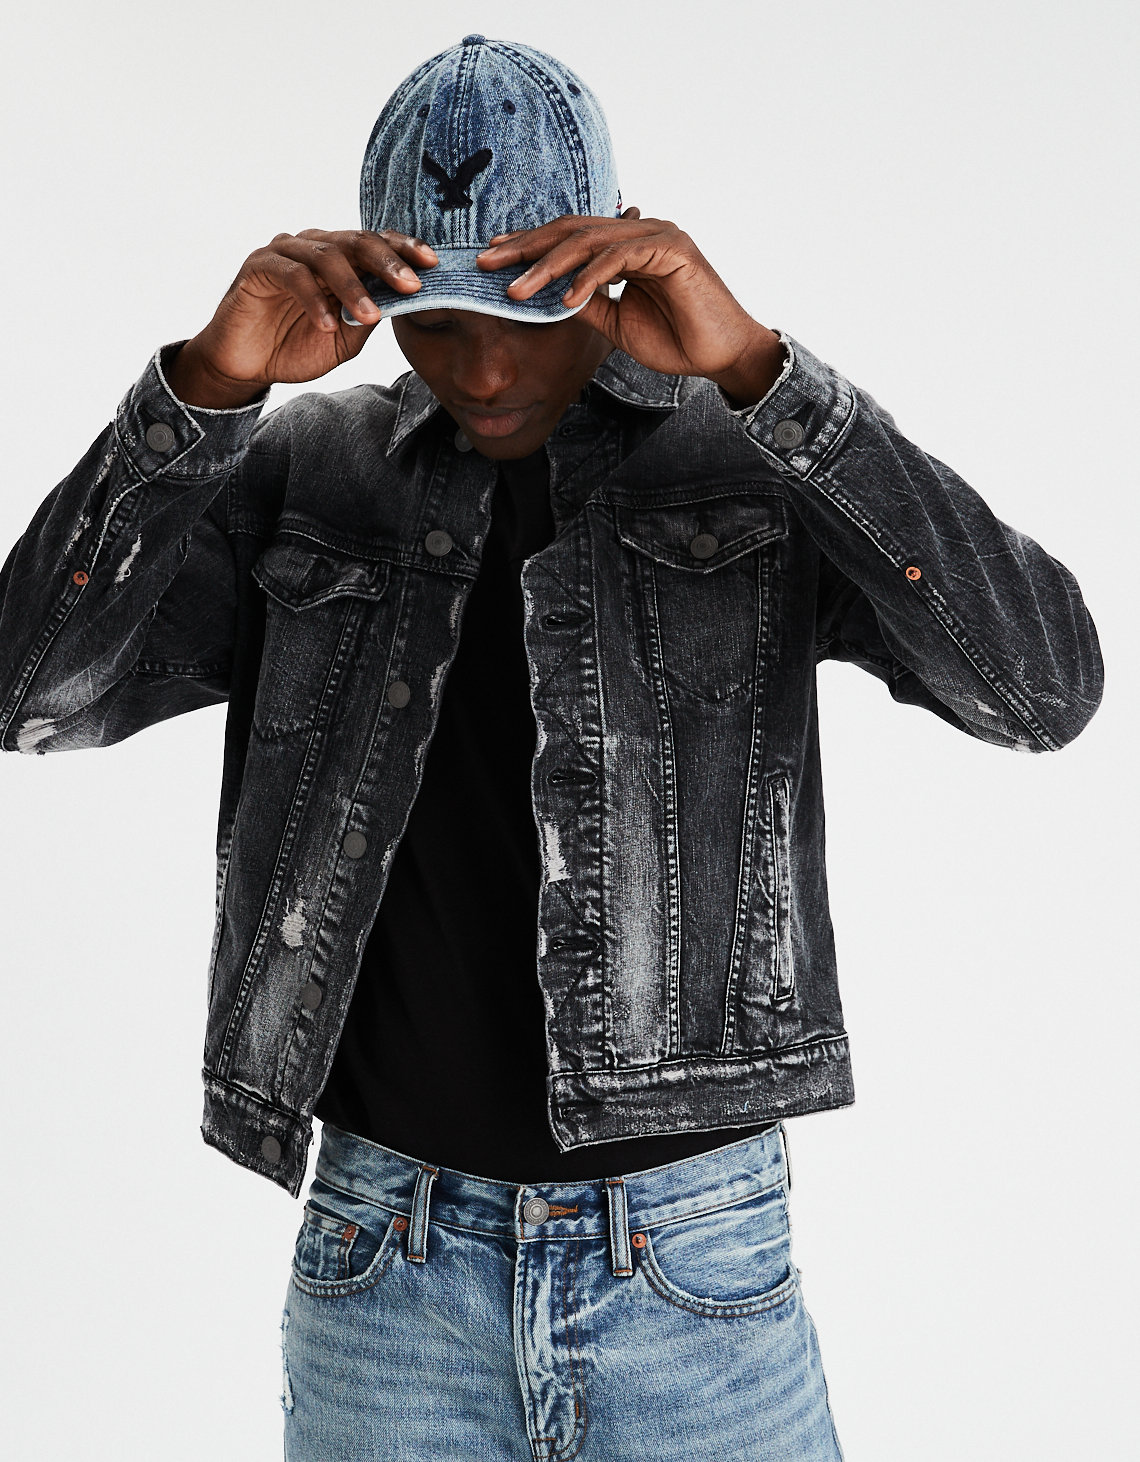 b4f508d700 AE Destroyed Black Denim Jacket. Placeholder image. Product Image